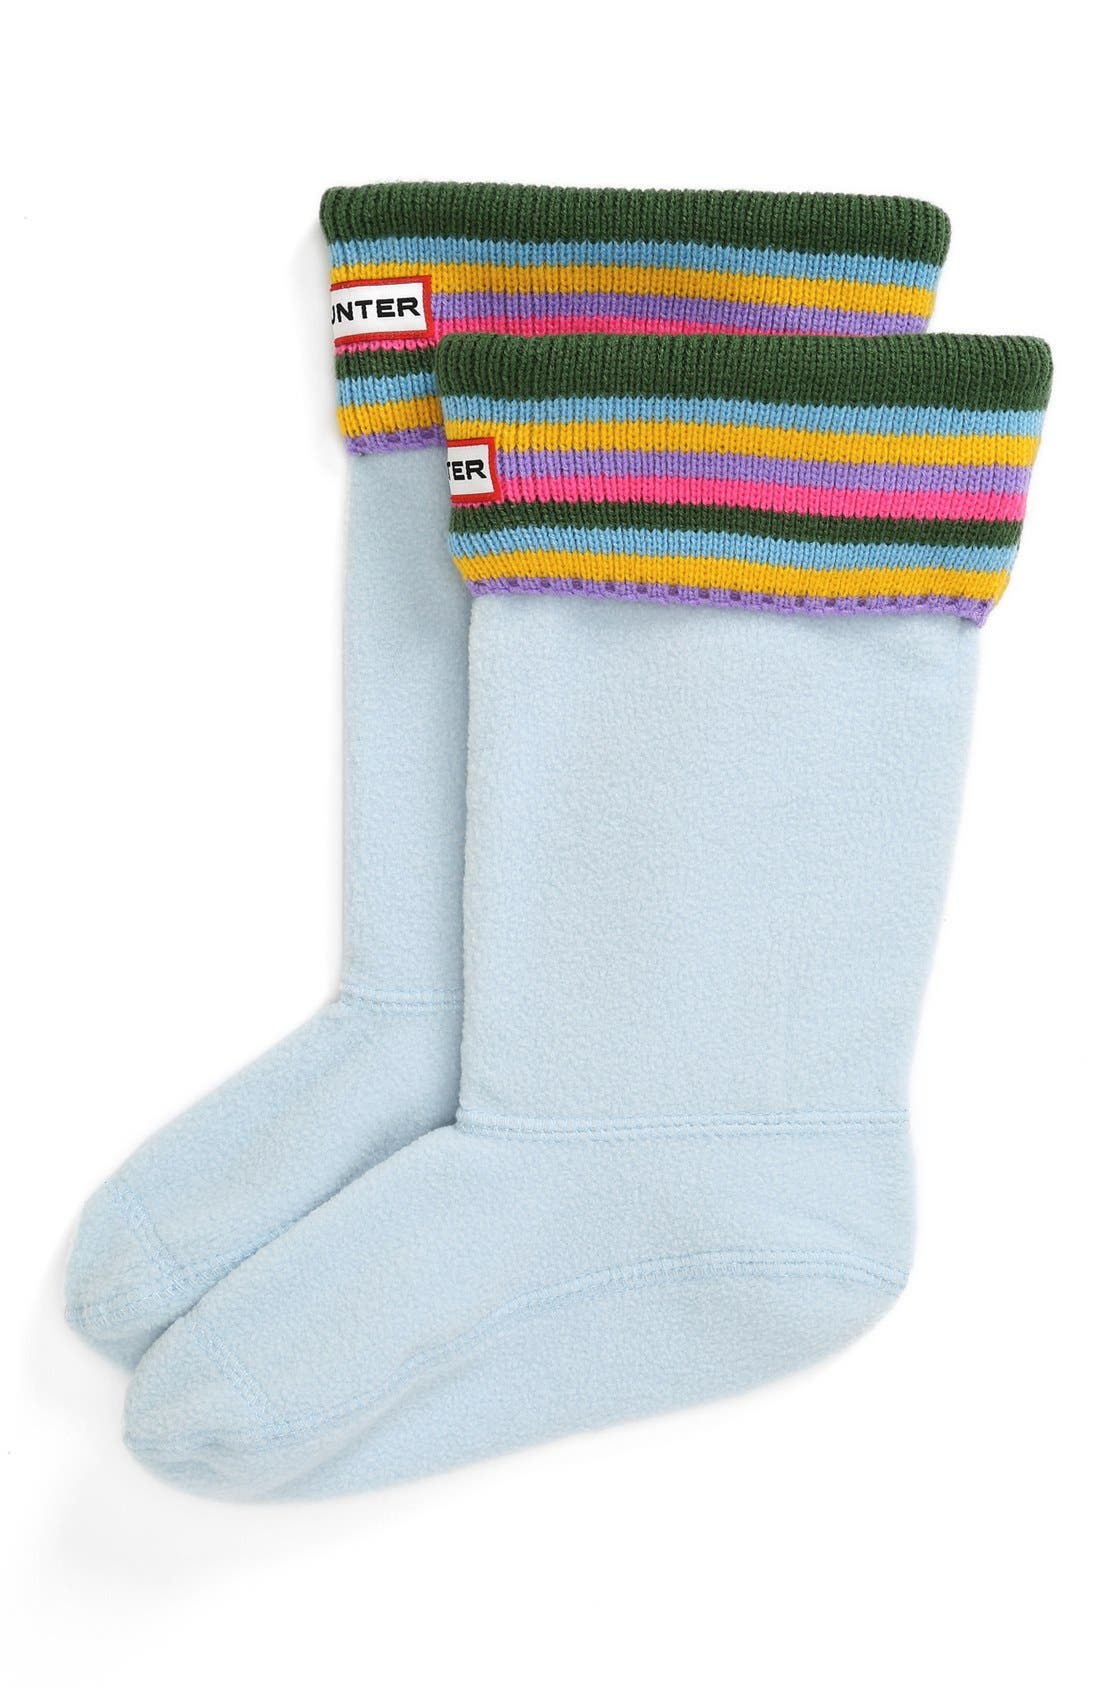 Main Image - Hunter Patterned Cuff Welly Socks (Toddler, Little Kid & Big Kid)